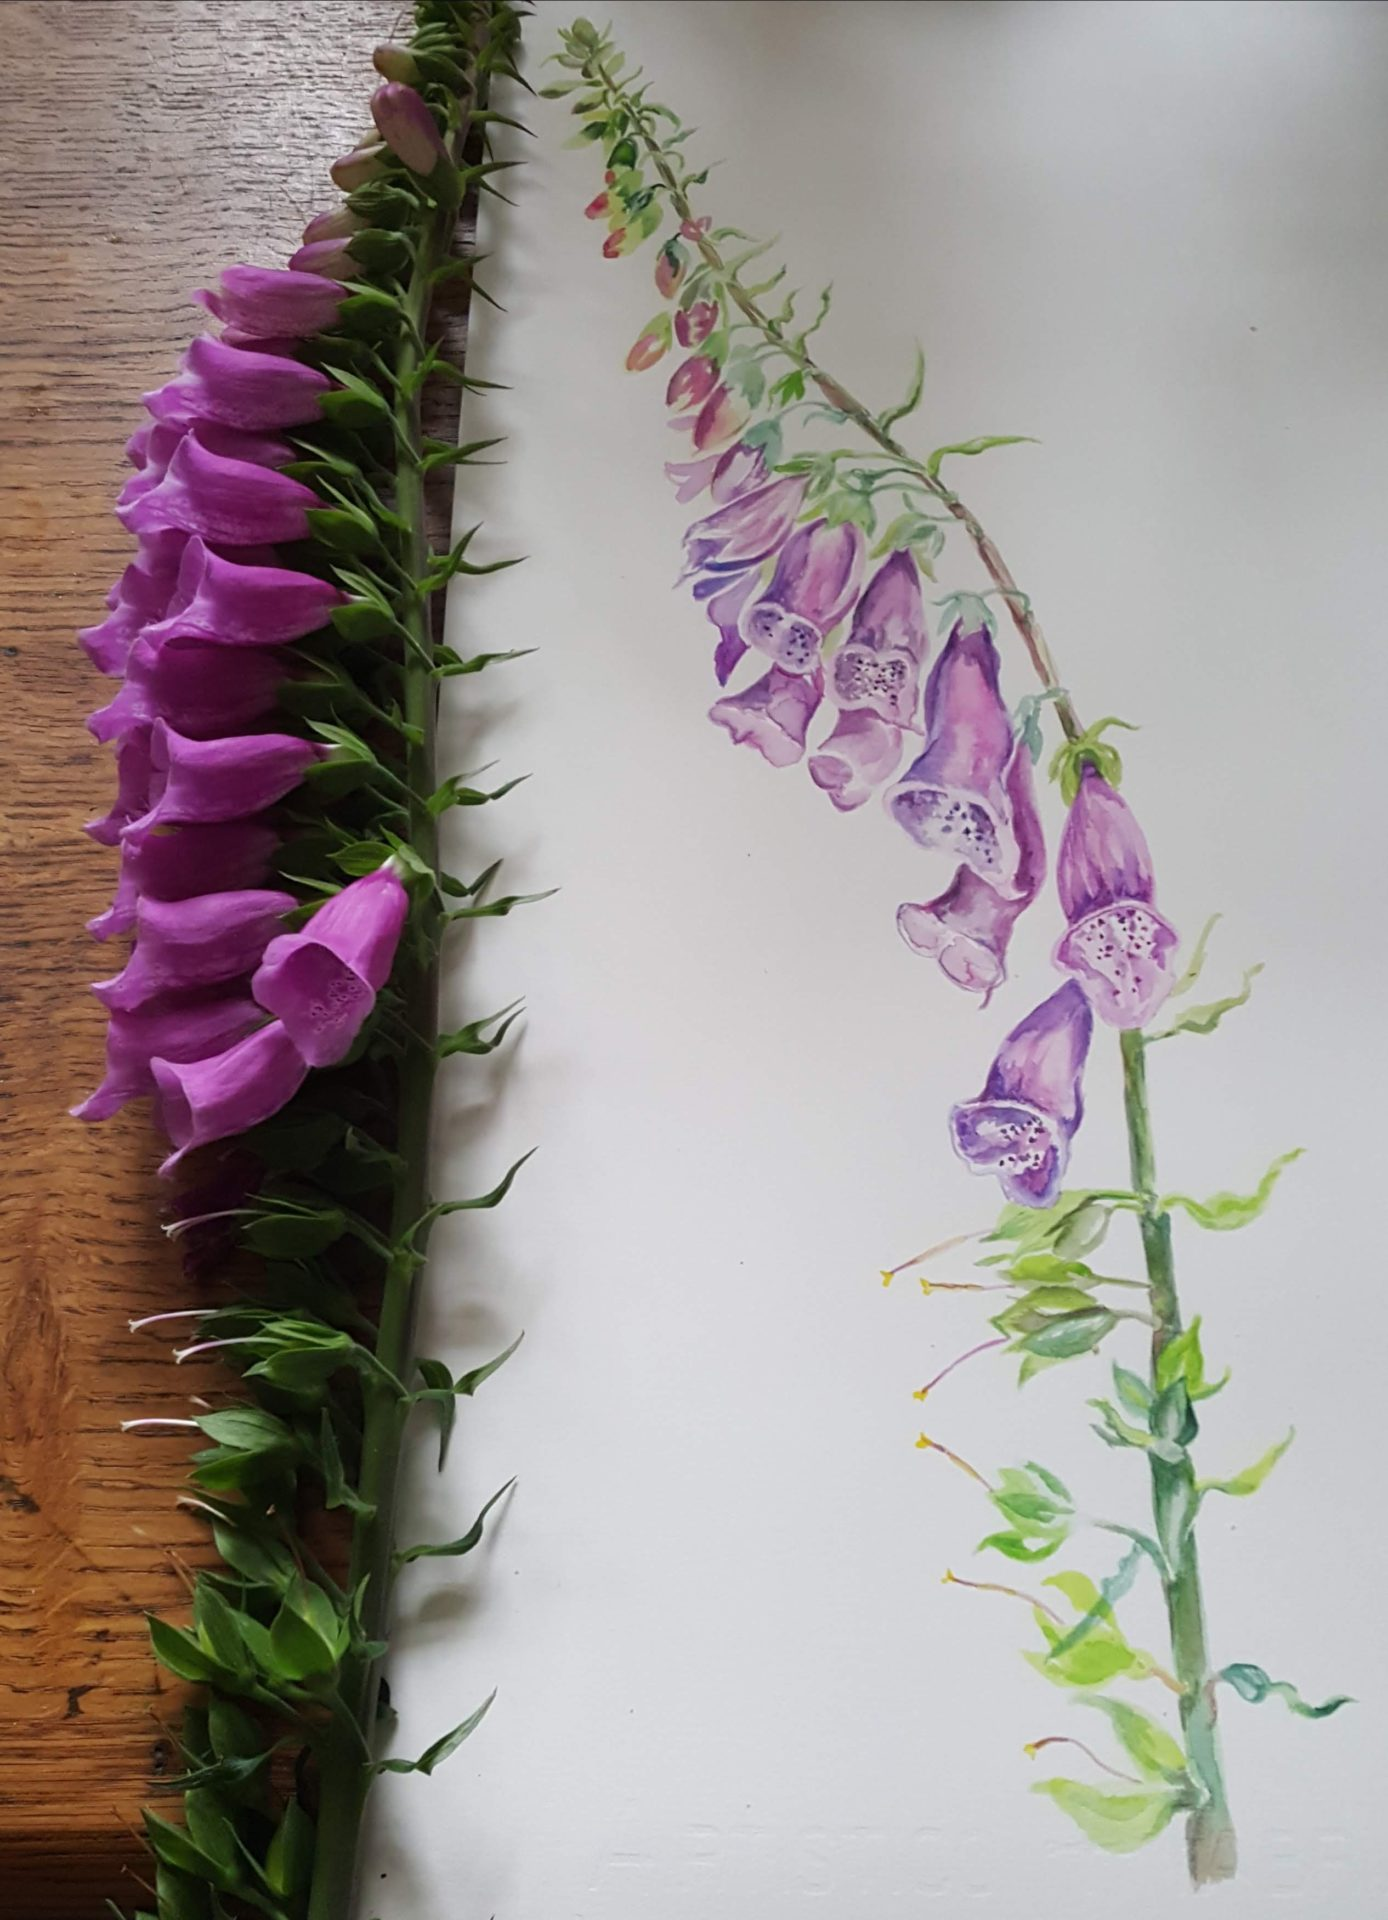 Painting of a fox glove